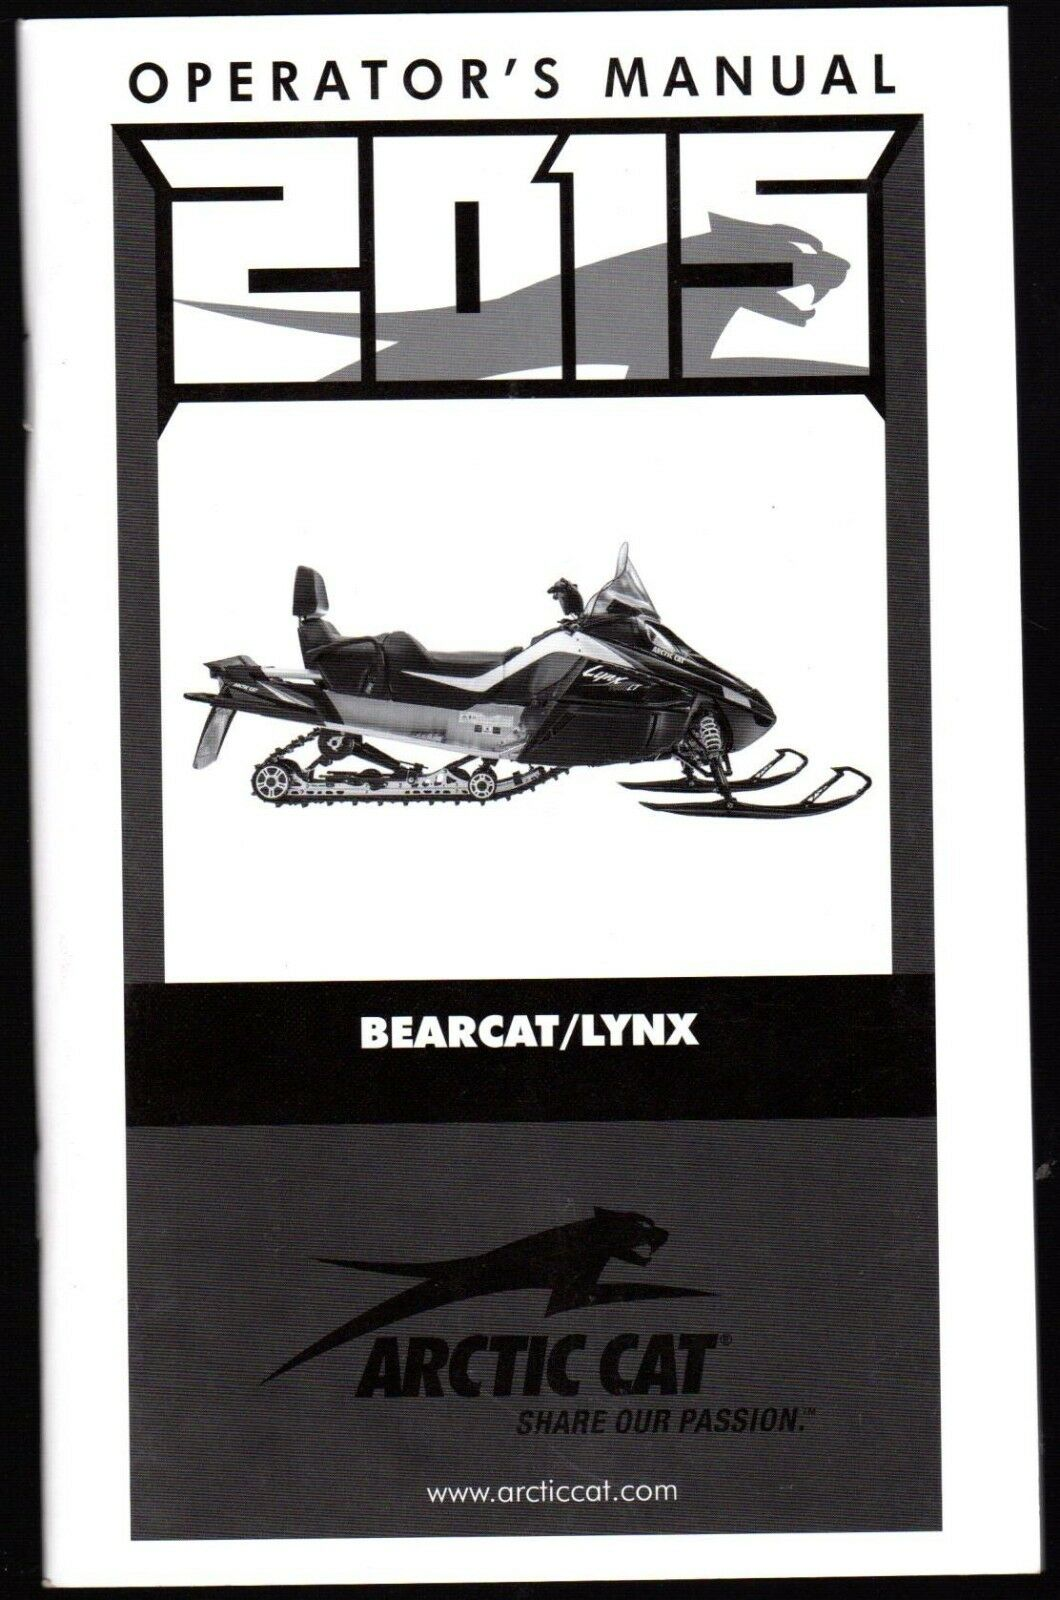 2015 ARCTIC CAT OPERATORS OWNERS MANUAL BEARCAT & LYNX NEW ...